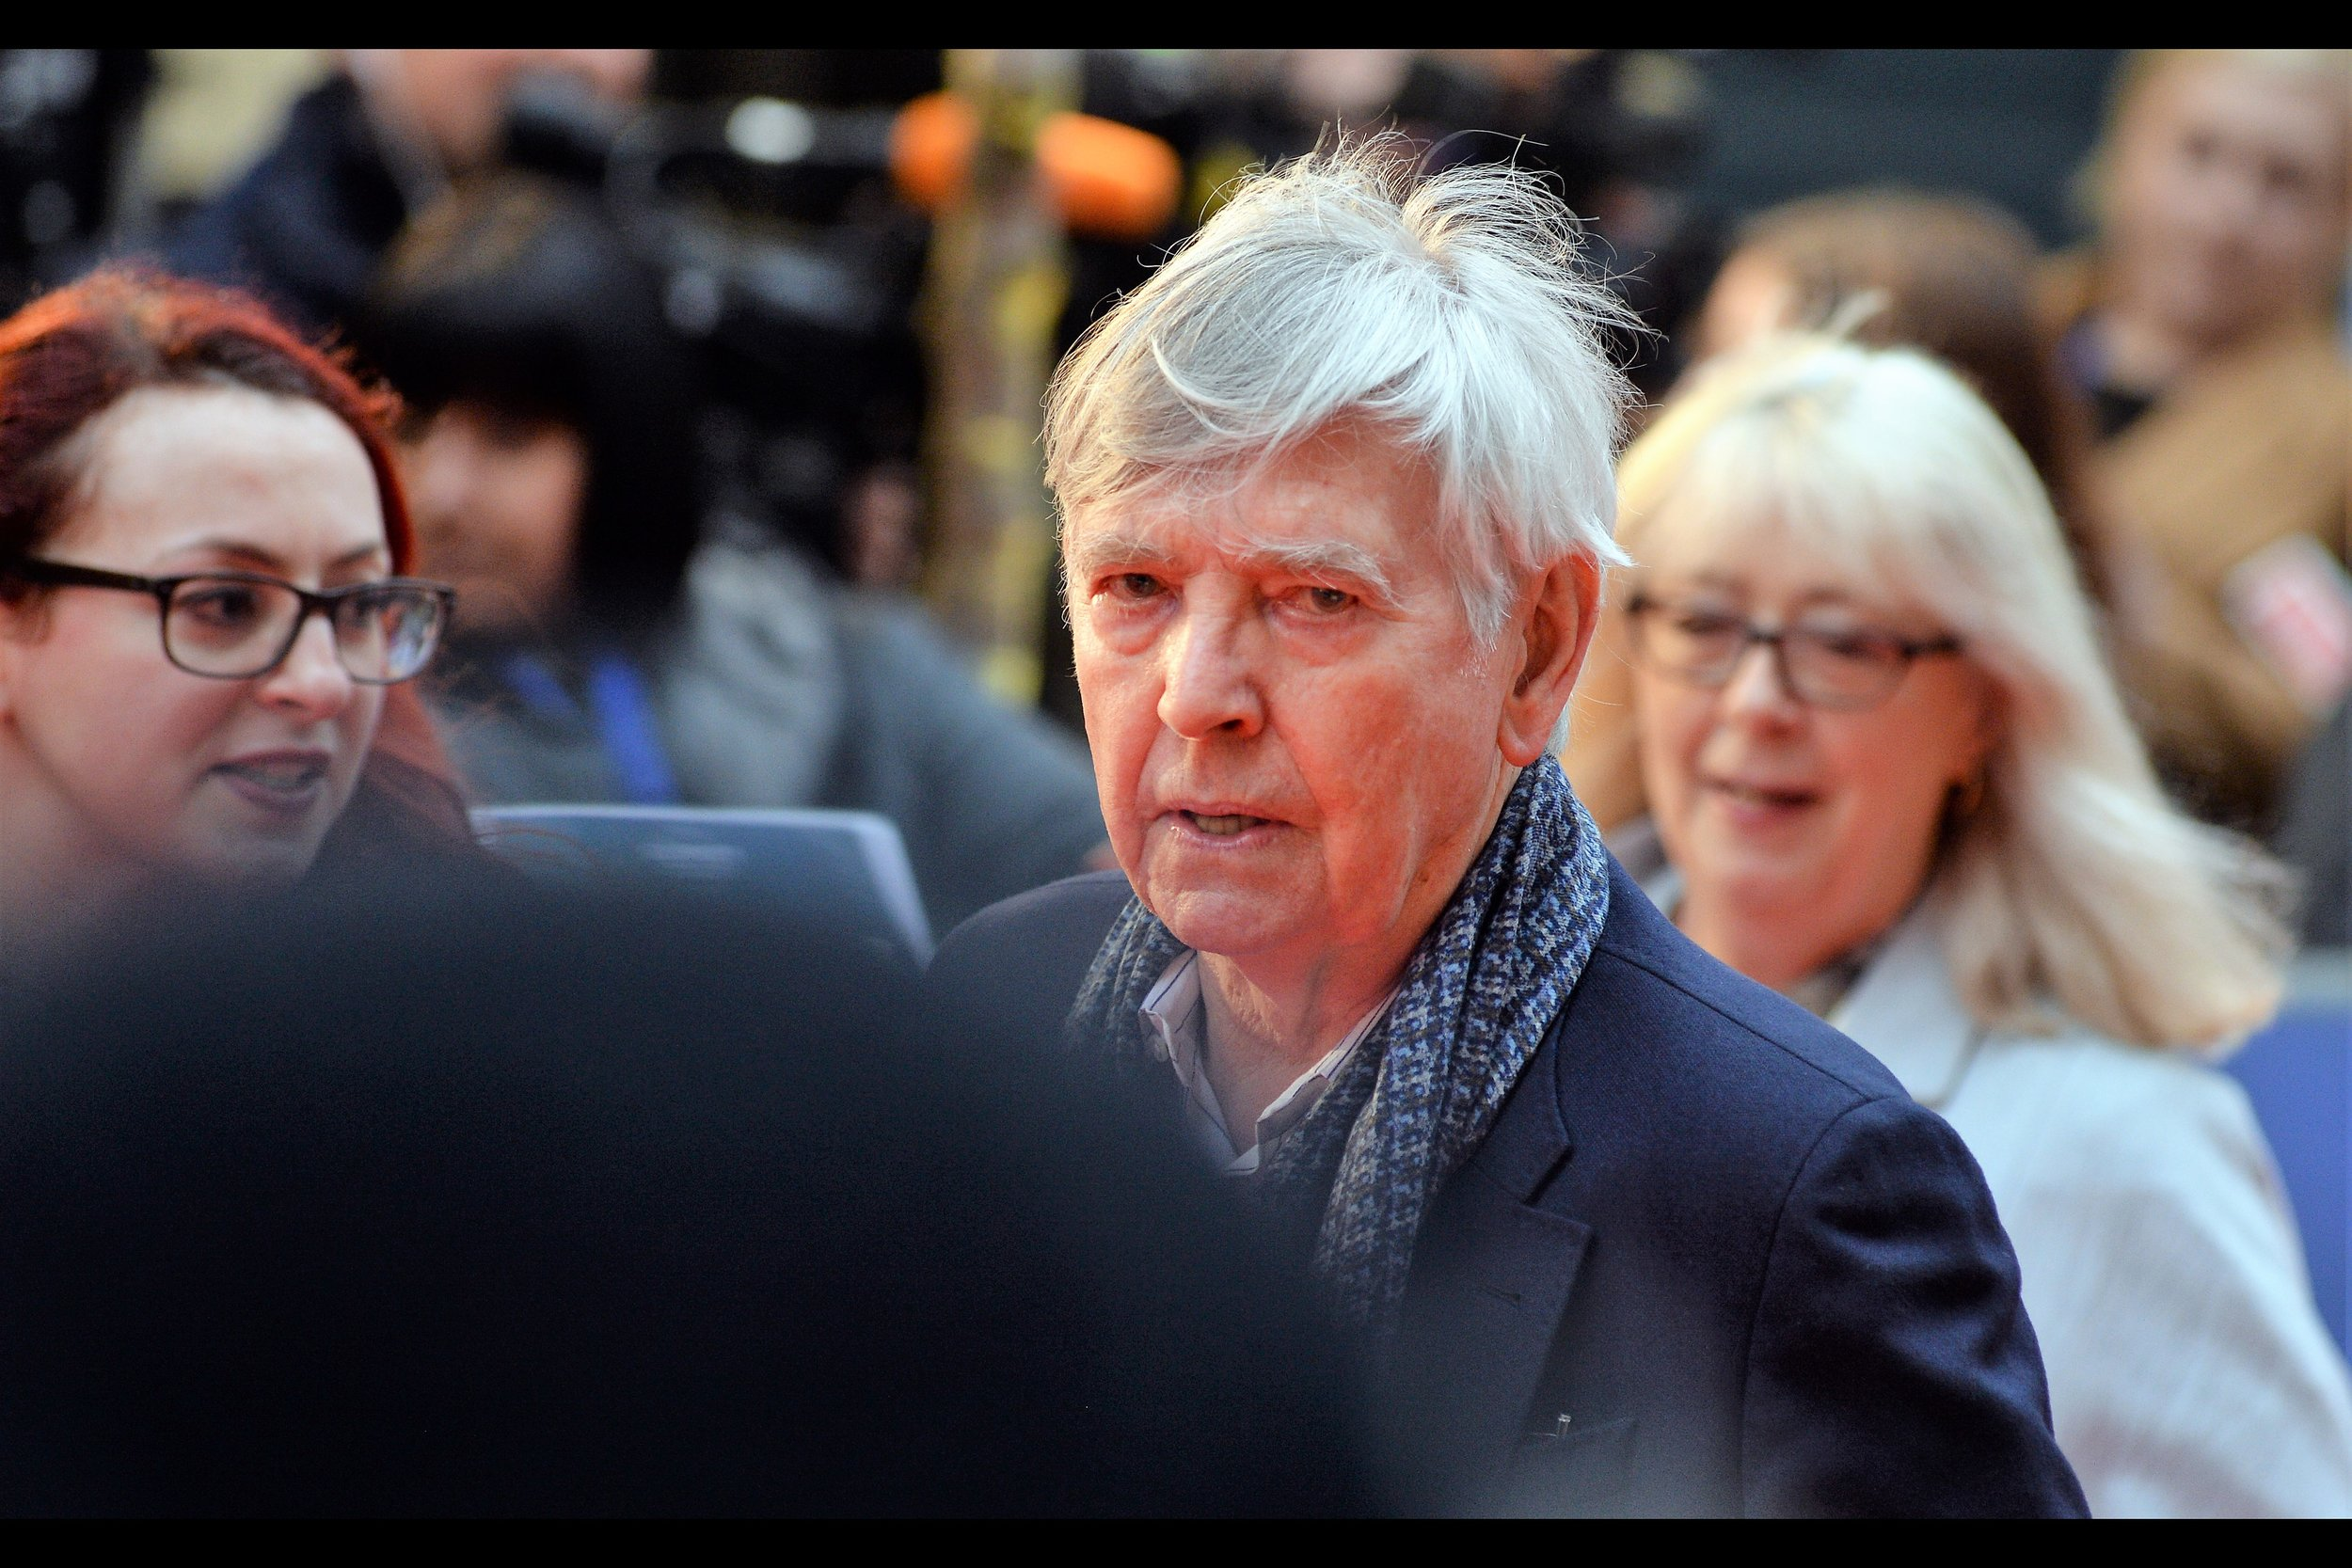 """""""I know you. You're the guy who keeps saying that people owe him five dollars"""".  Tom Courtenay has had two Academy Award nominations - in 1966 and 1984 - and has won three BAFTAs. But I don't talk about the Baftas anymore. Not since the Thing that happened... happened this year."""